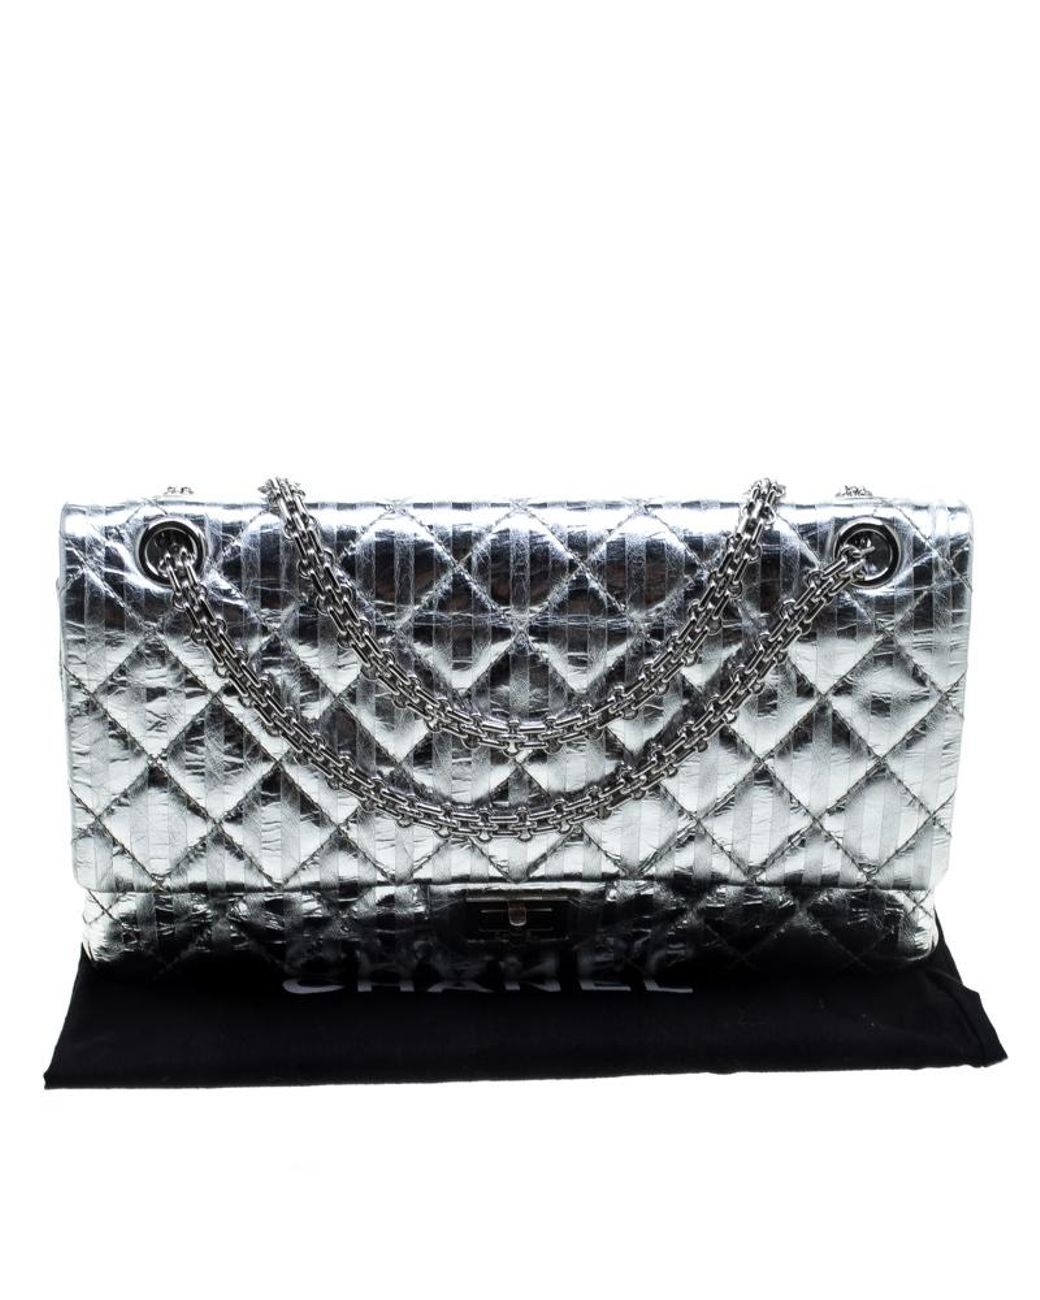 438293540d4543 Chanel Silver Quilted Leather Striped Reissue 2.55 Classic 226 Flap Bag in  Metallic - Lyst